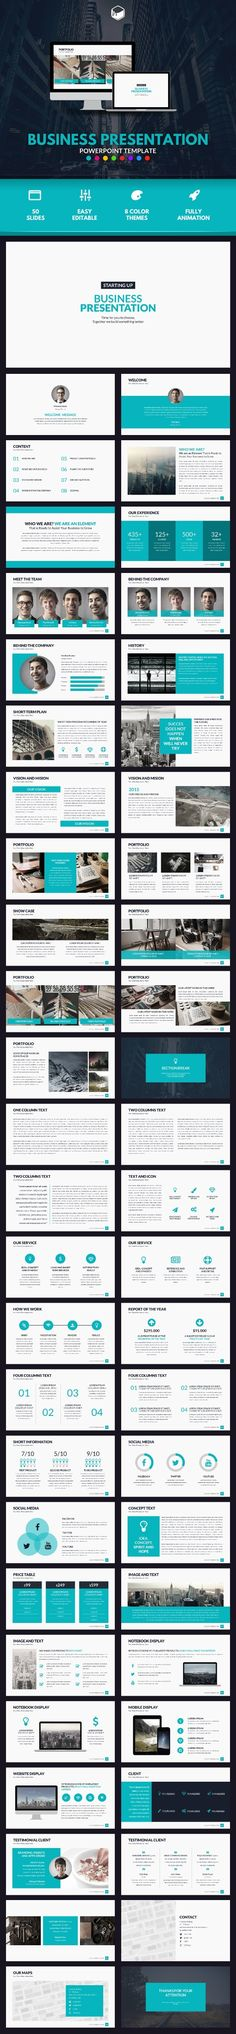 Best Presentation Design Inspiration Images  Page Layout Ppt  Buy Business Presentation  Powerpoint Template By Descarteshouston On  Graphicriver A Clean And Excellent Powerpoint Template For Your Business